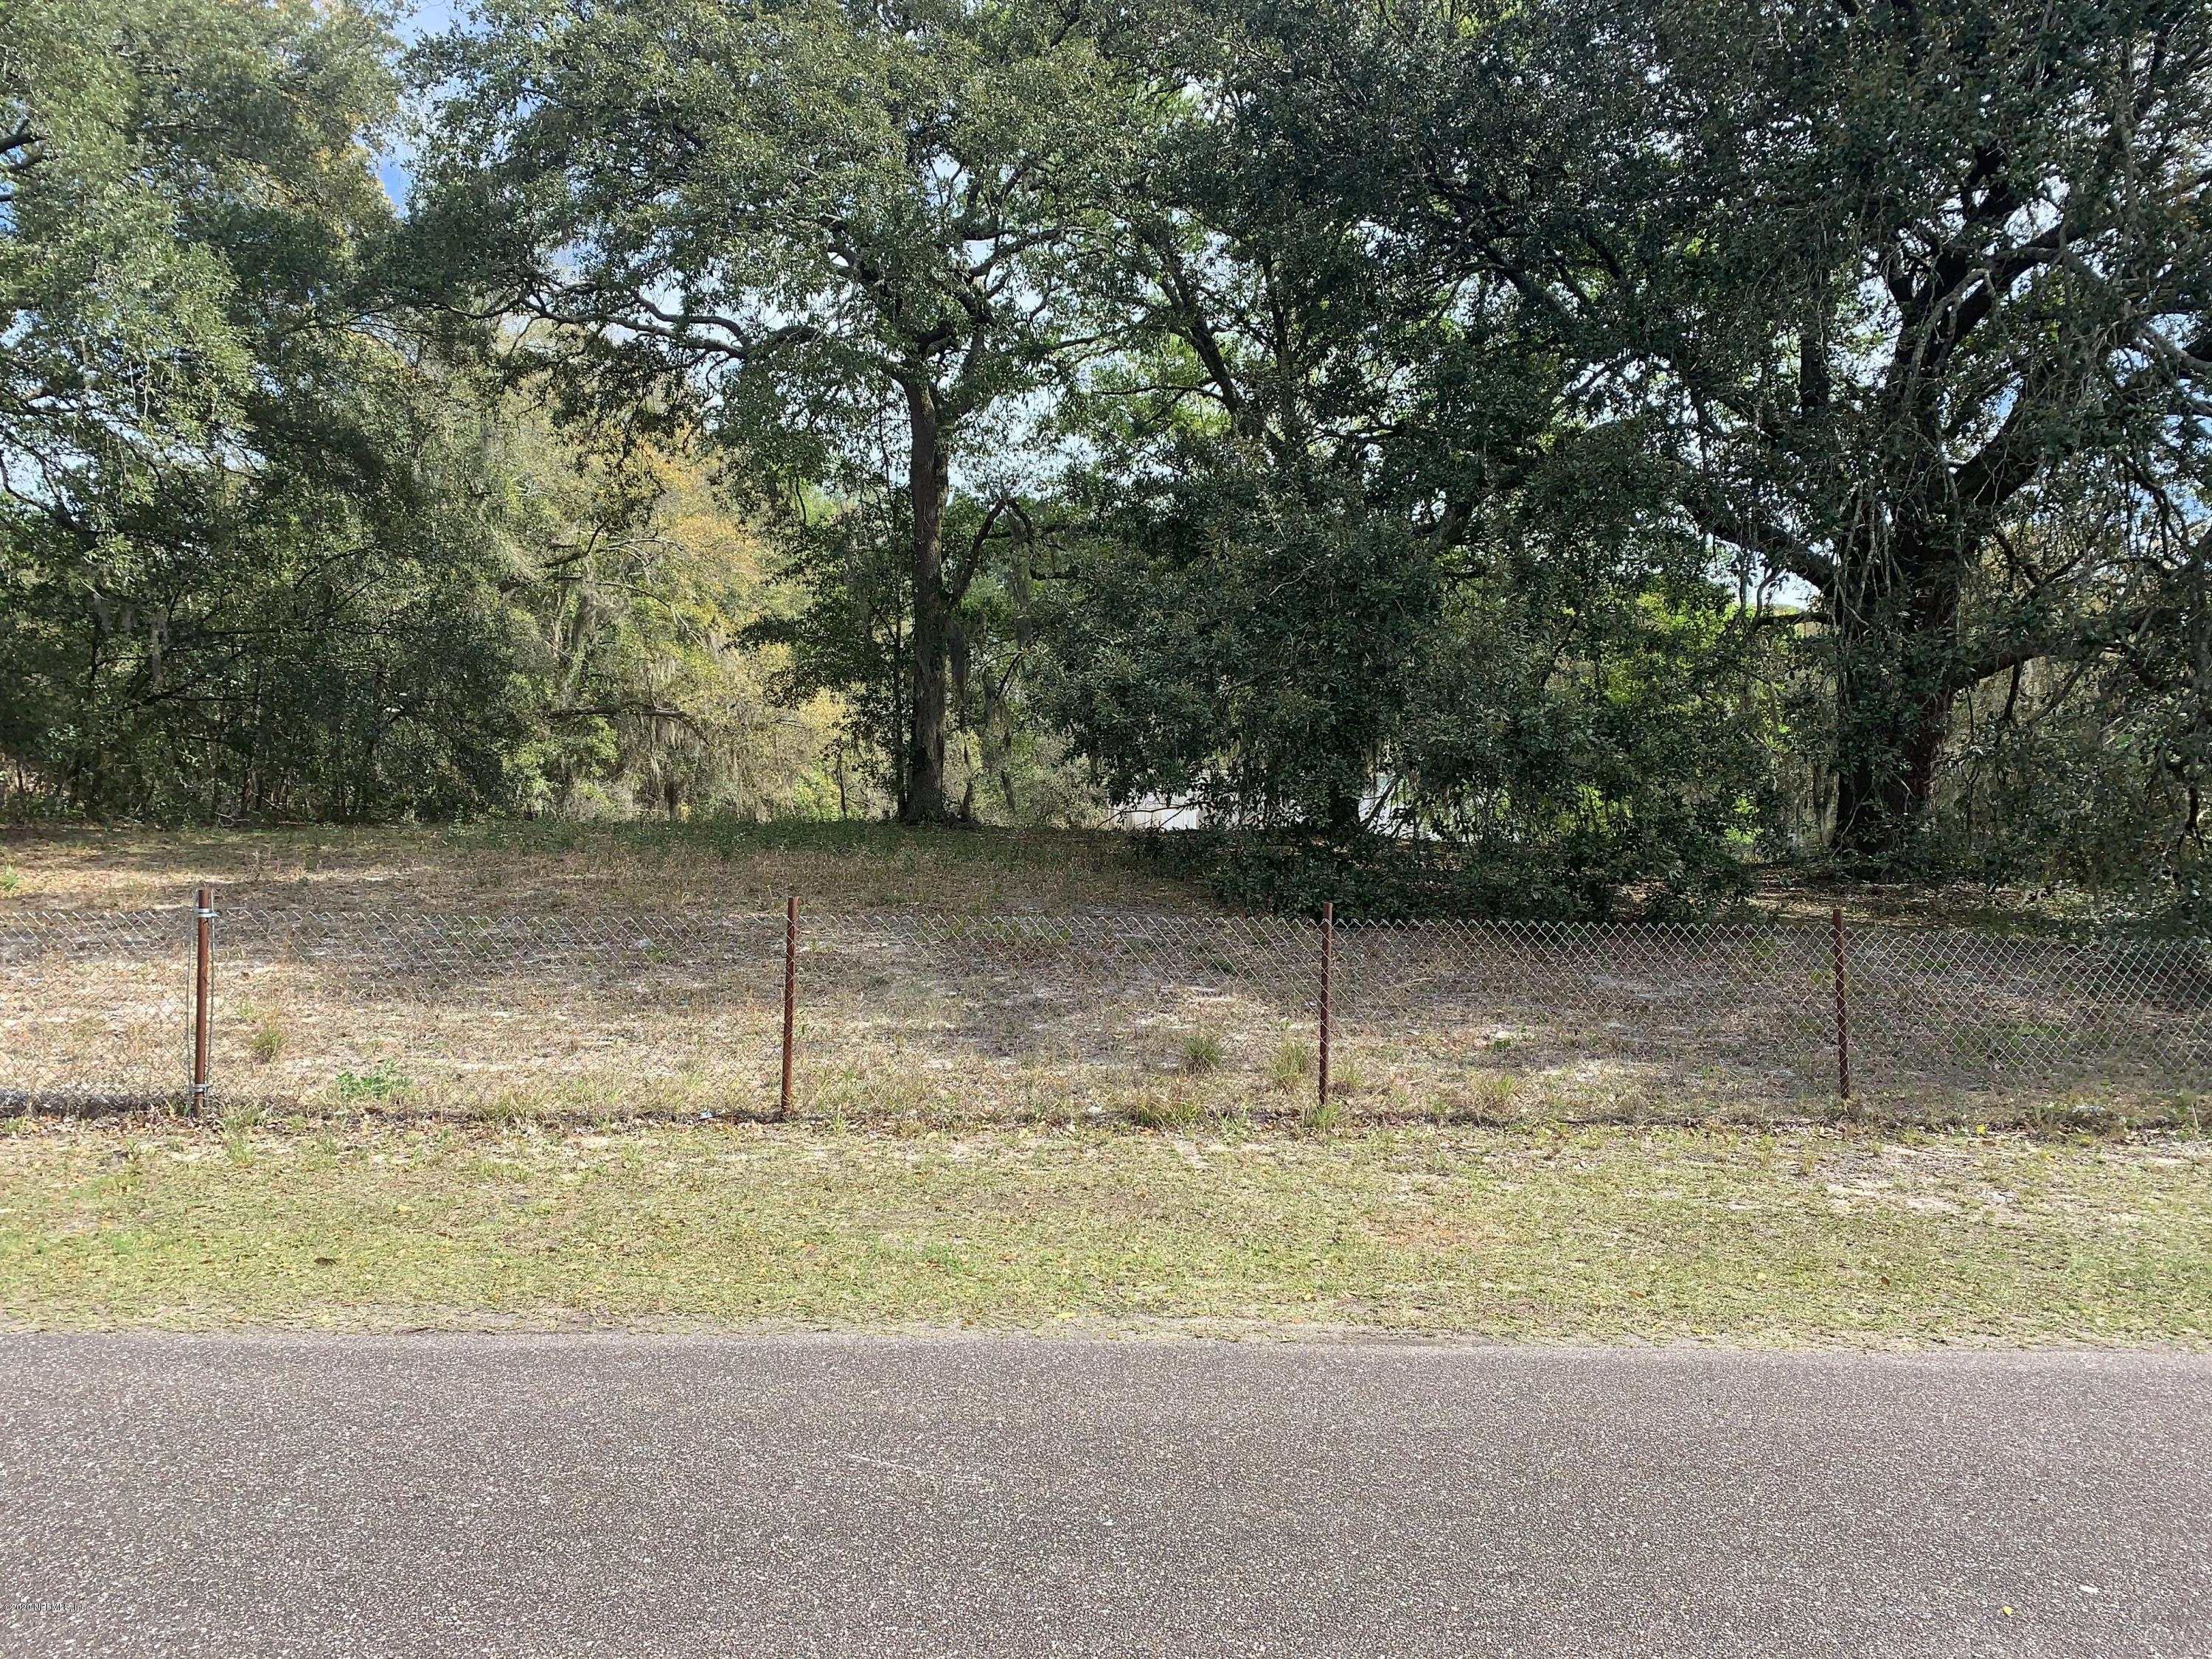 0 REED, JACKSONVILLE, FLORIDA 32208, ,Vacant land,For sale,REED,1043567